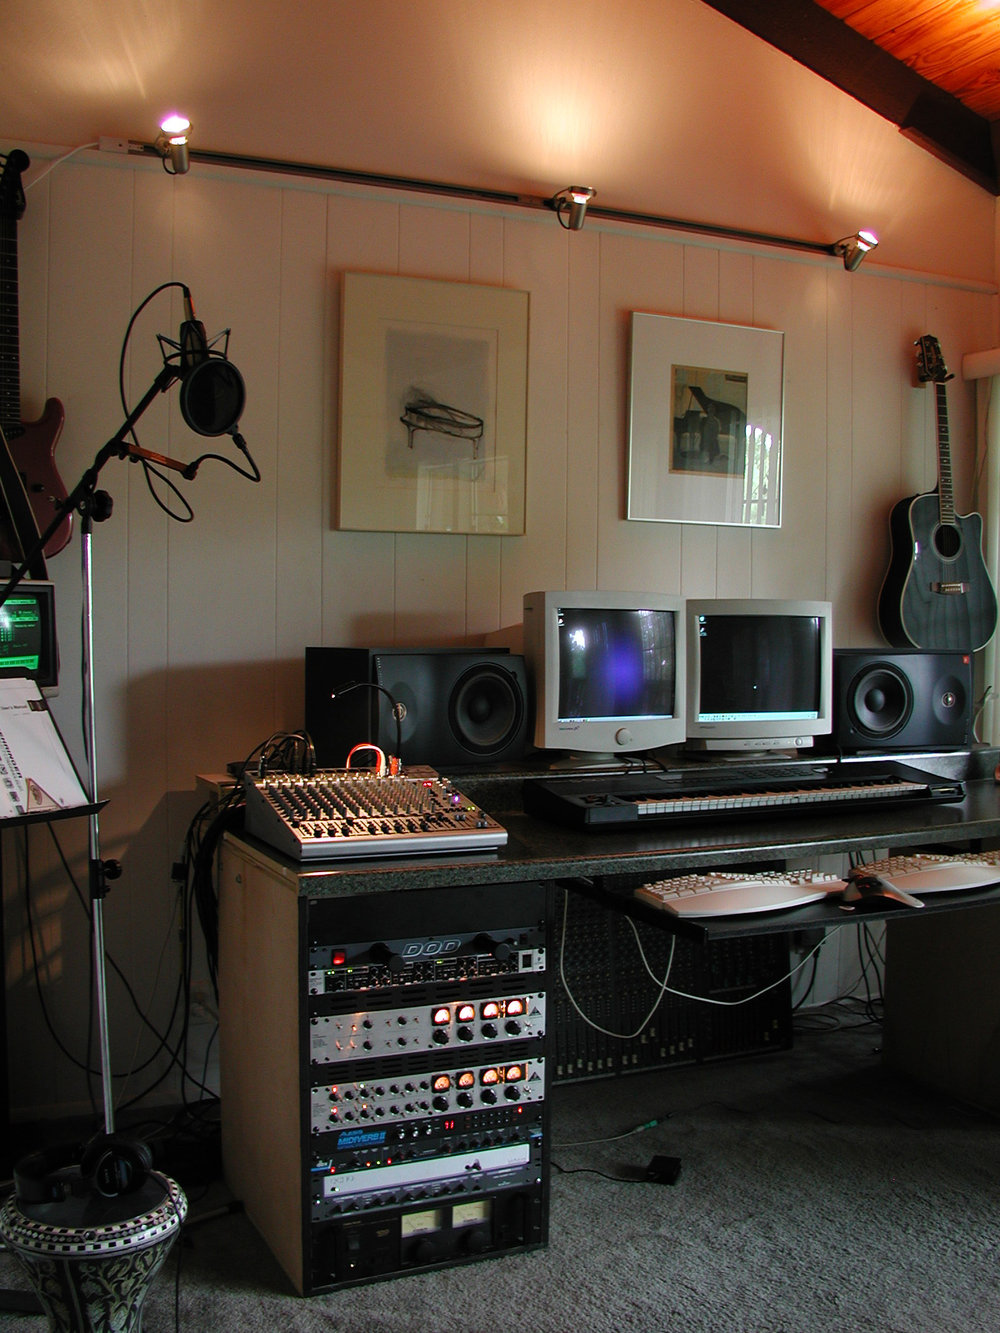 The second setup in Austin on Trailside Drive circa 2002 - This shot is after retiring the large Soundcraft console. I had no where to store it so it stayed propped up behind the desk for awhile until I finally sold it.